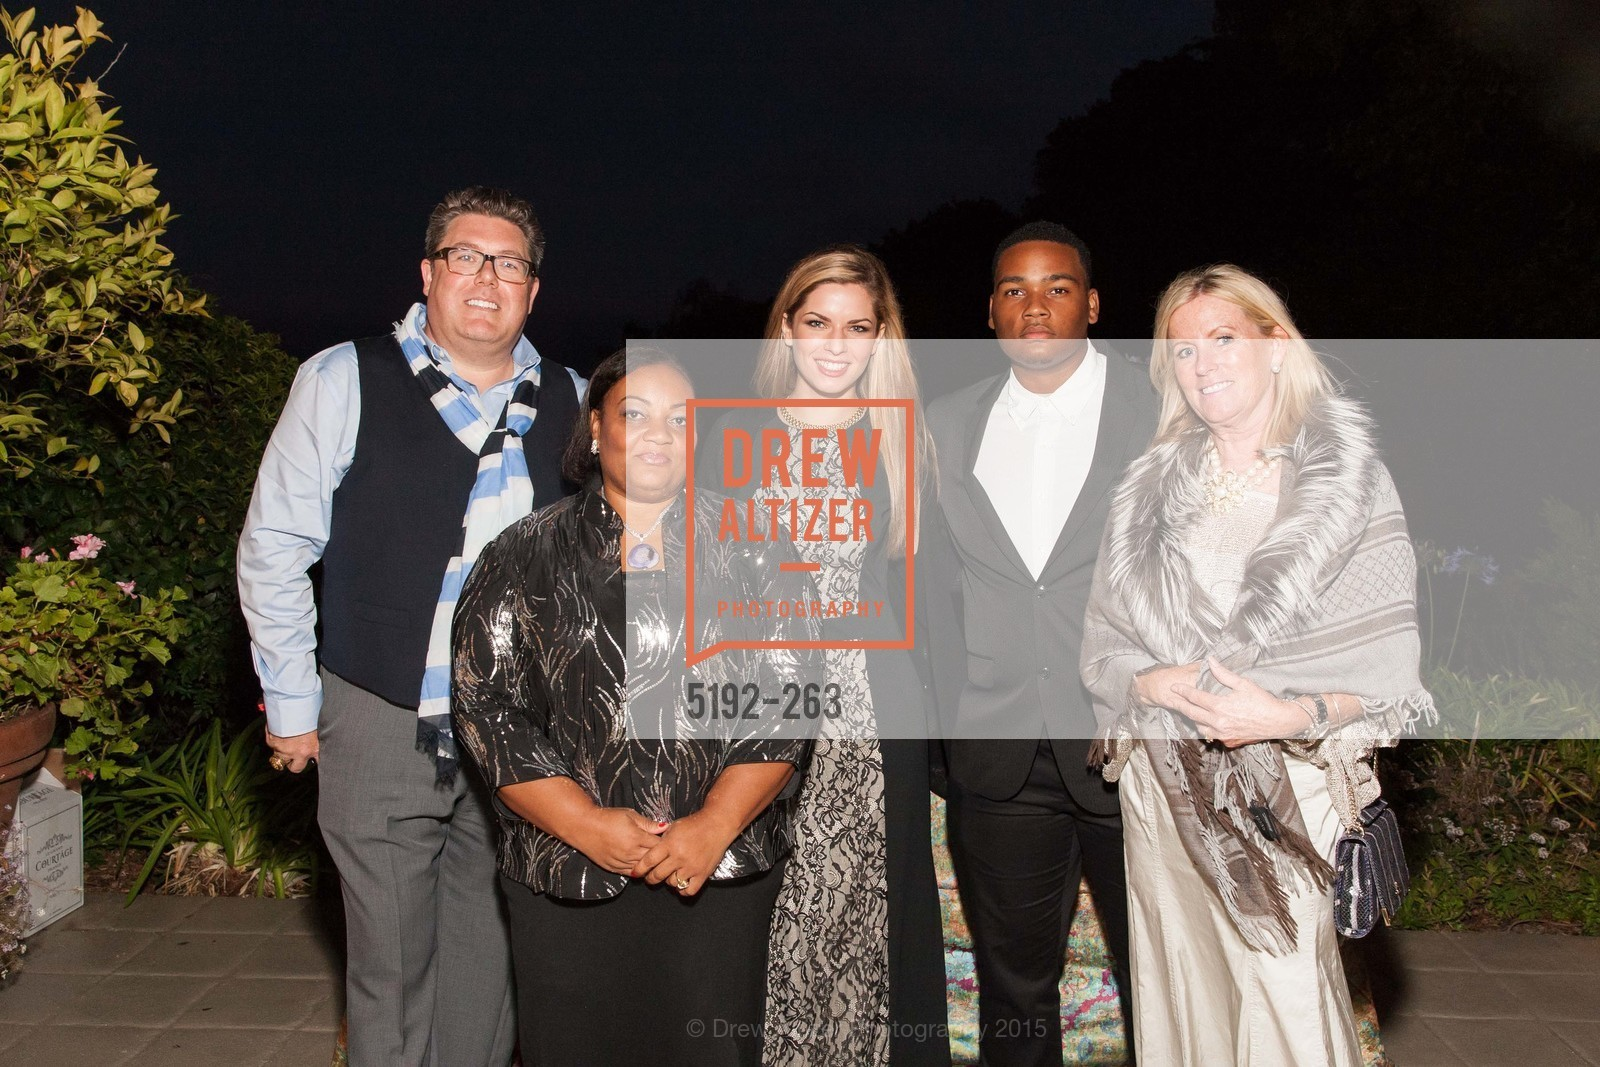 Clif Loftin, Doris Armstrong, Melanie Marsell, Christopher Armstrong, Colleen Noyes, Drever Family Foundation Presents The 2015 Hotbed Benefit, Private, August 22nd, 2015,Drew Altizer, Drew Altizer Photography, full-service agency, private events, San Francisco photographer, photographer california